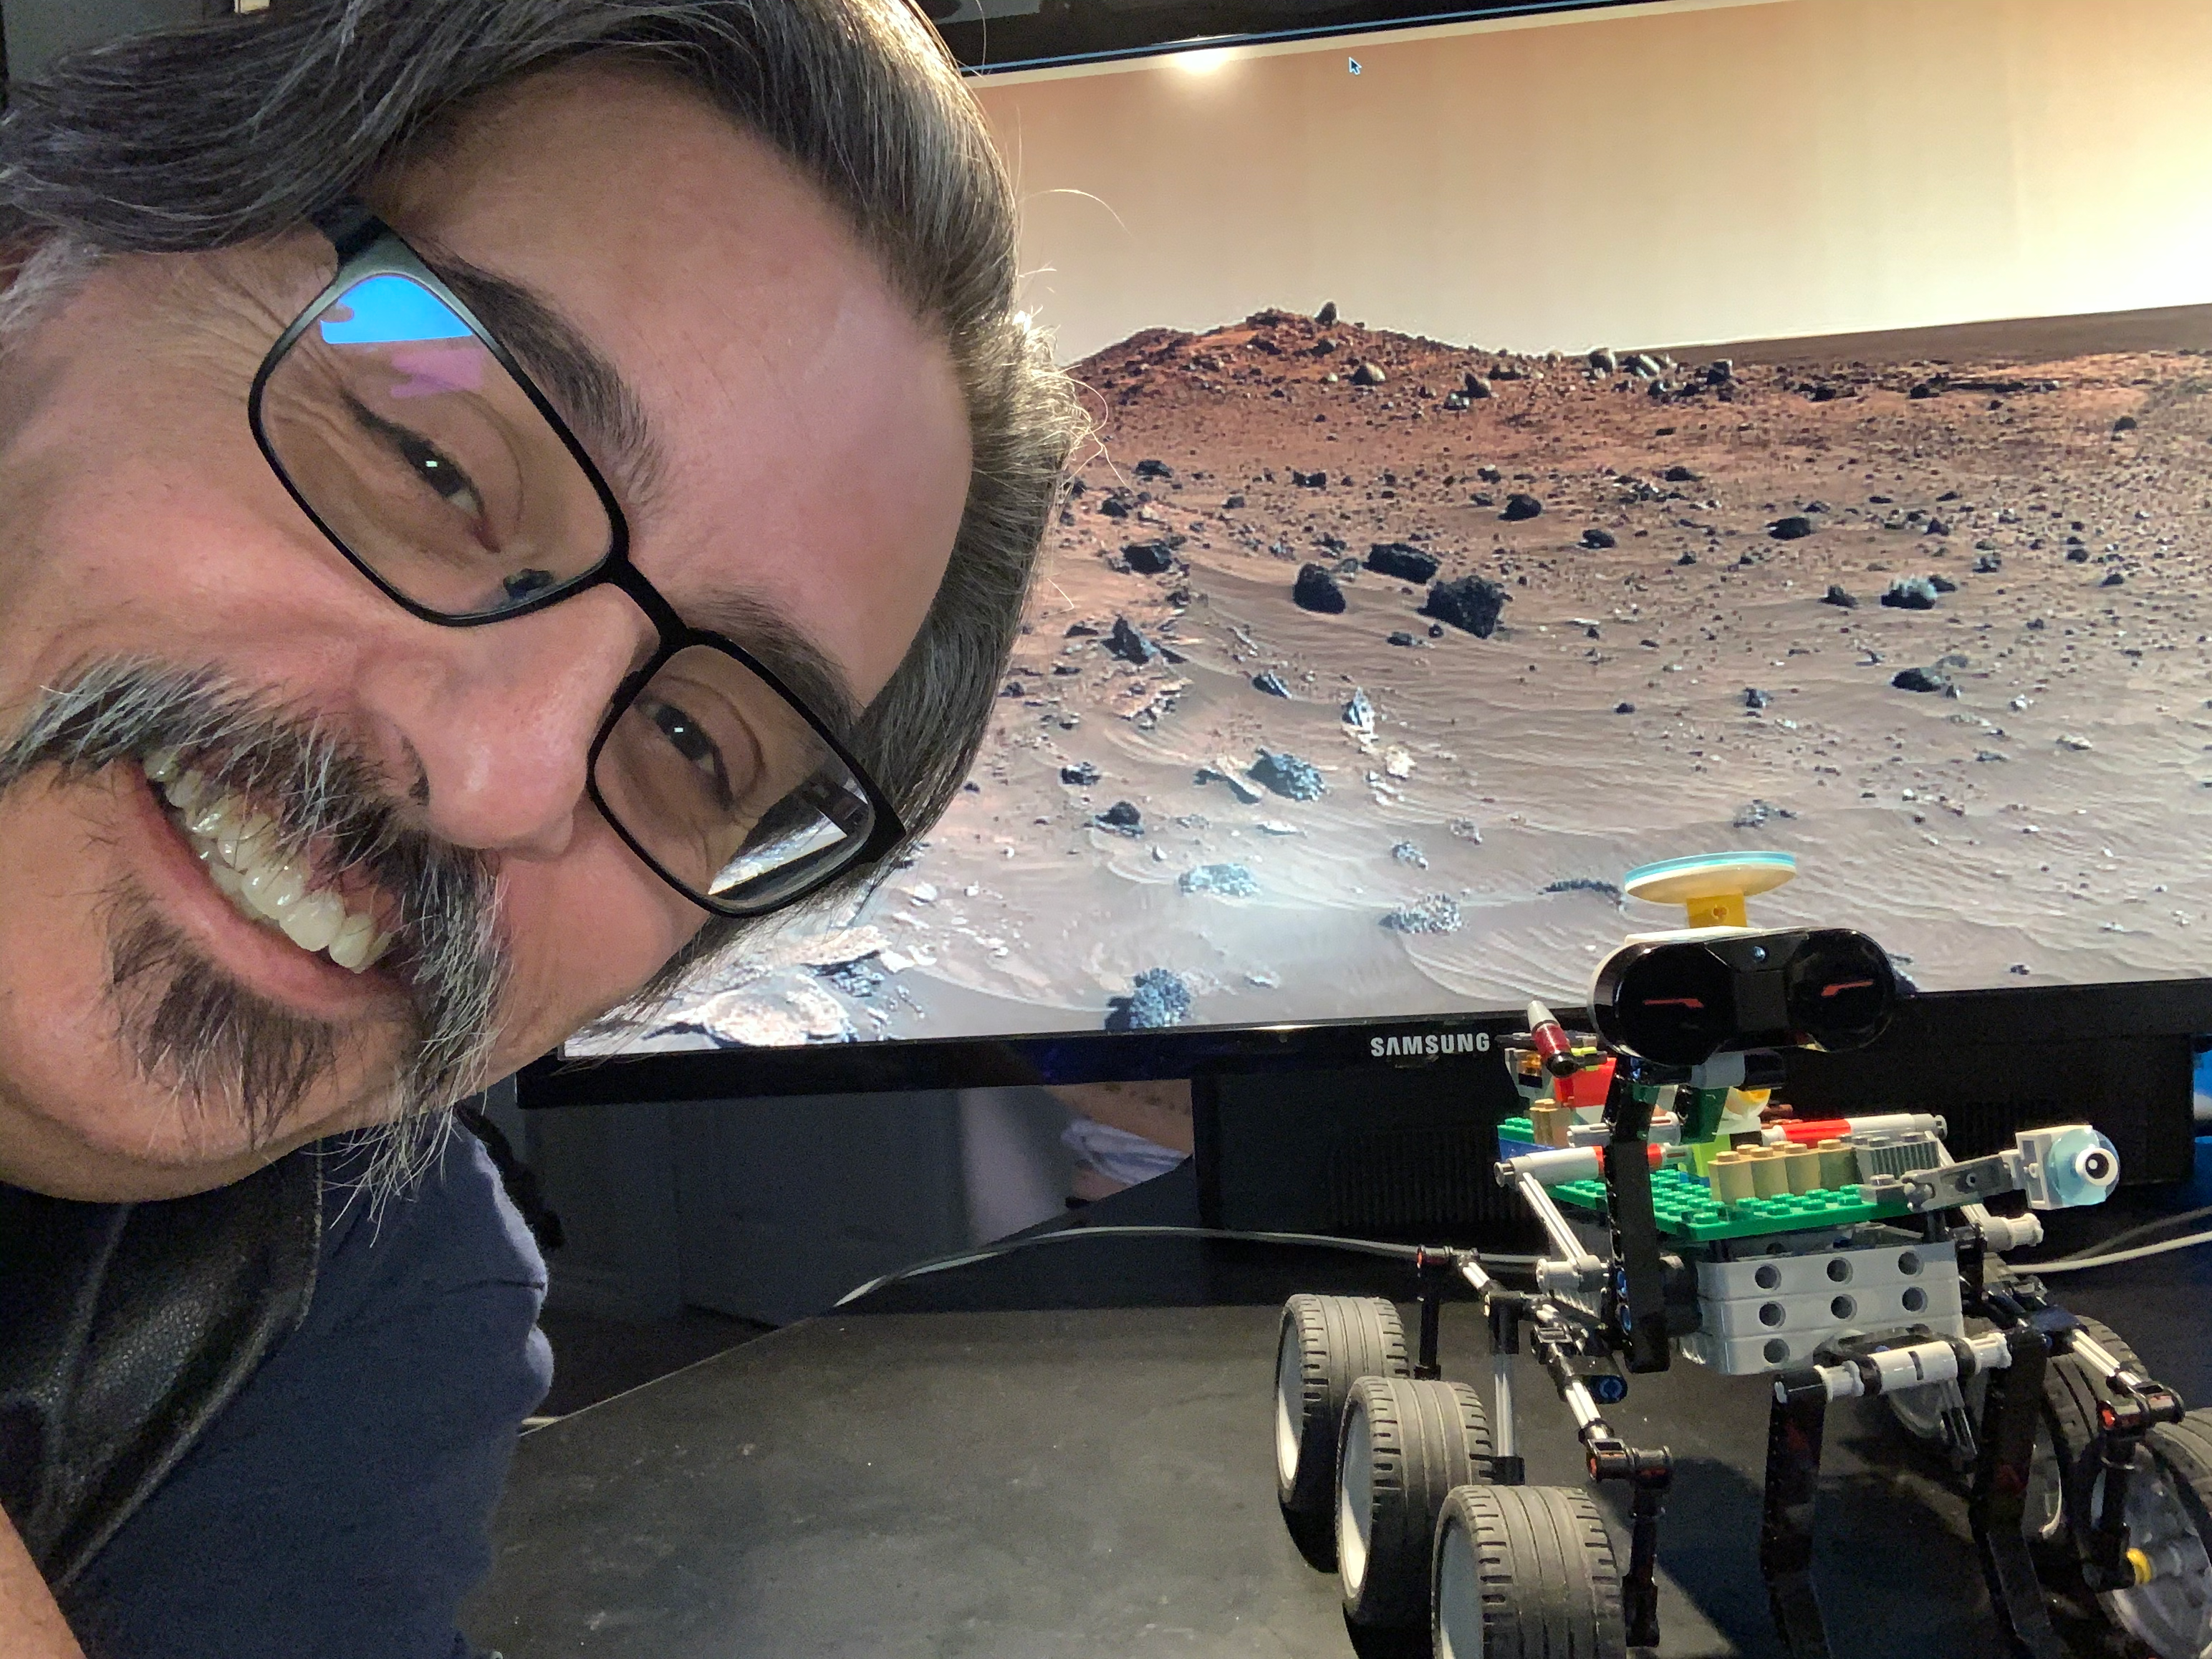 2021-02-18_me-and-my-mars-rover_1